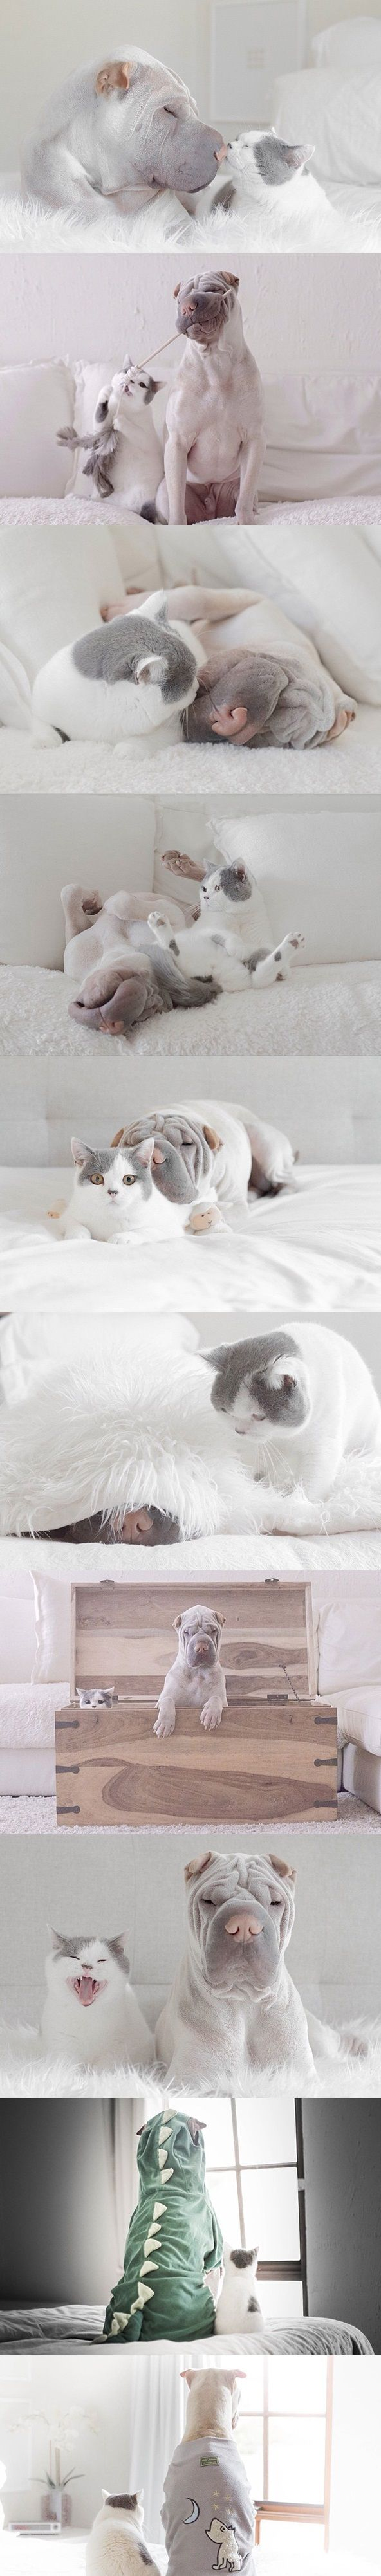 Paddington The Dog And Butler The Cat | Best Friends Ever! | Photos By ©Annie & Paddington